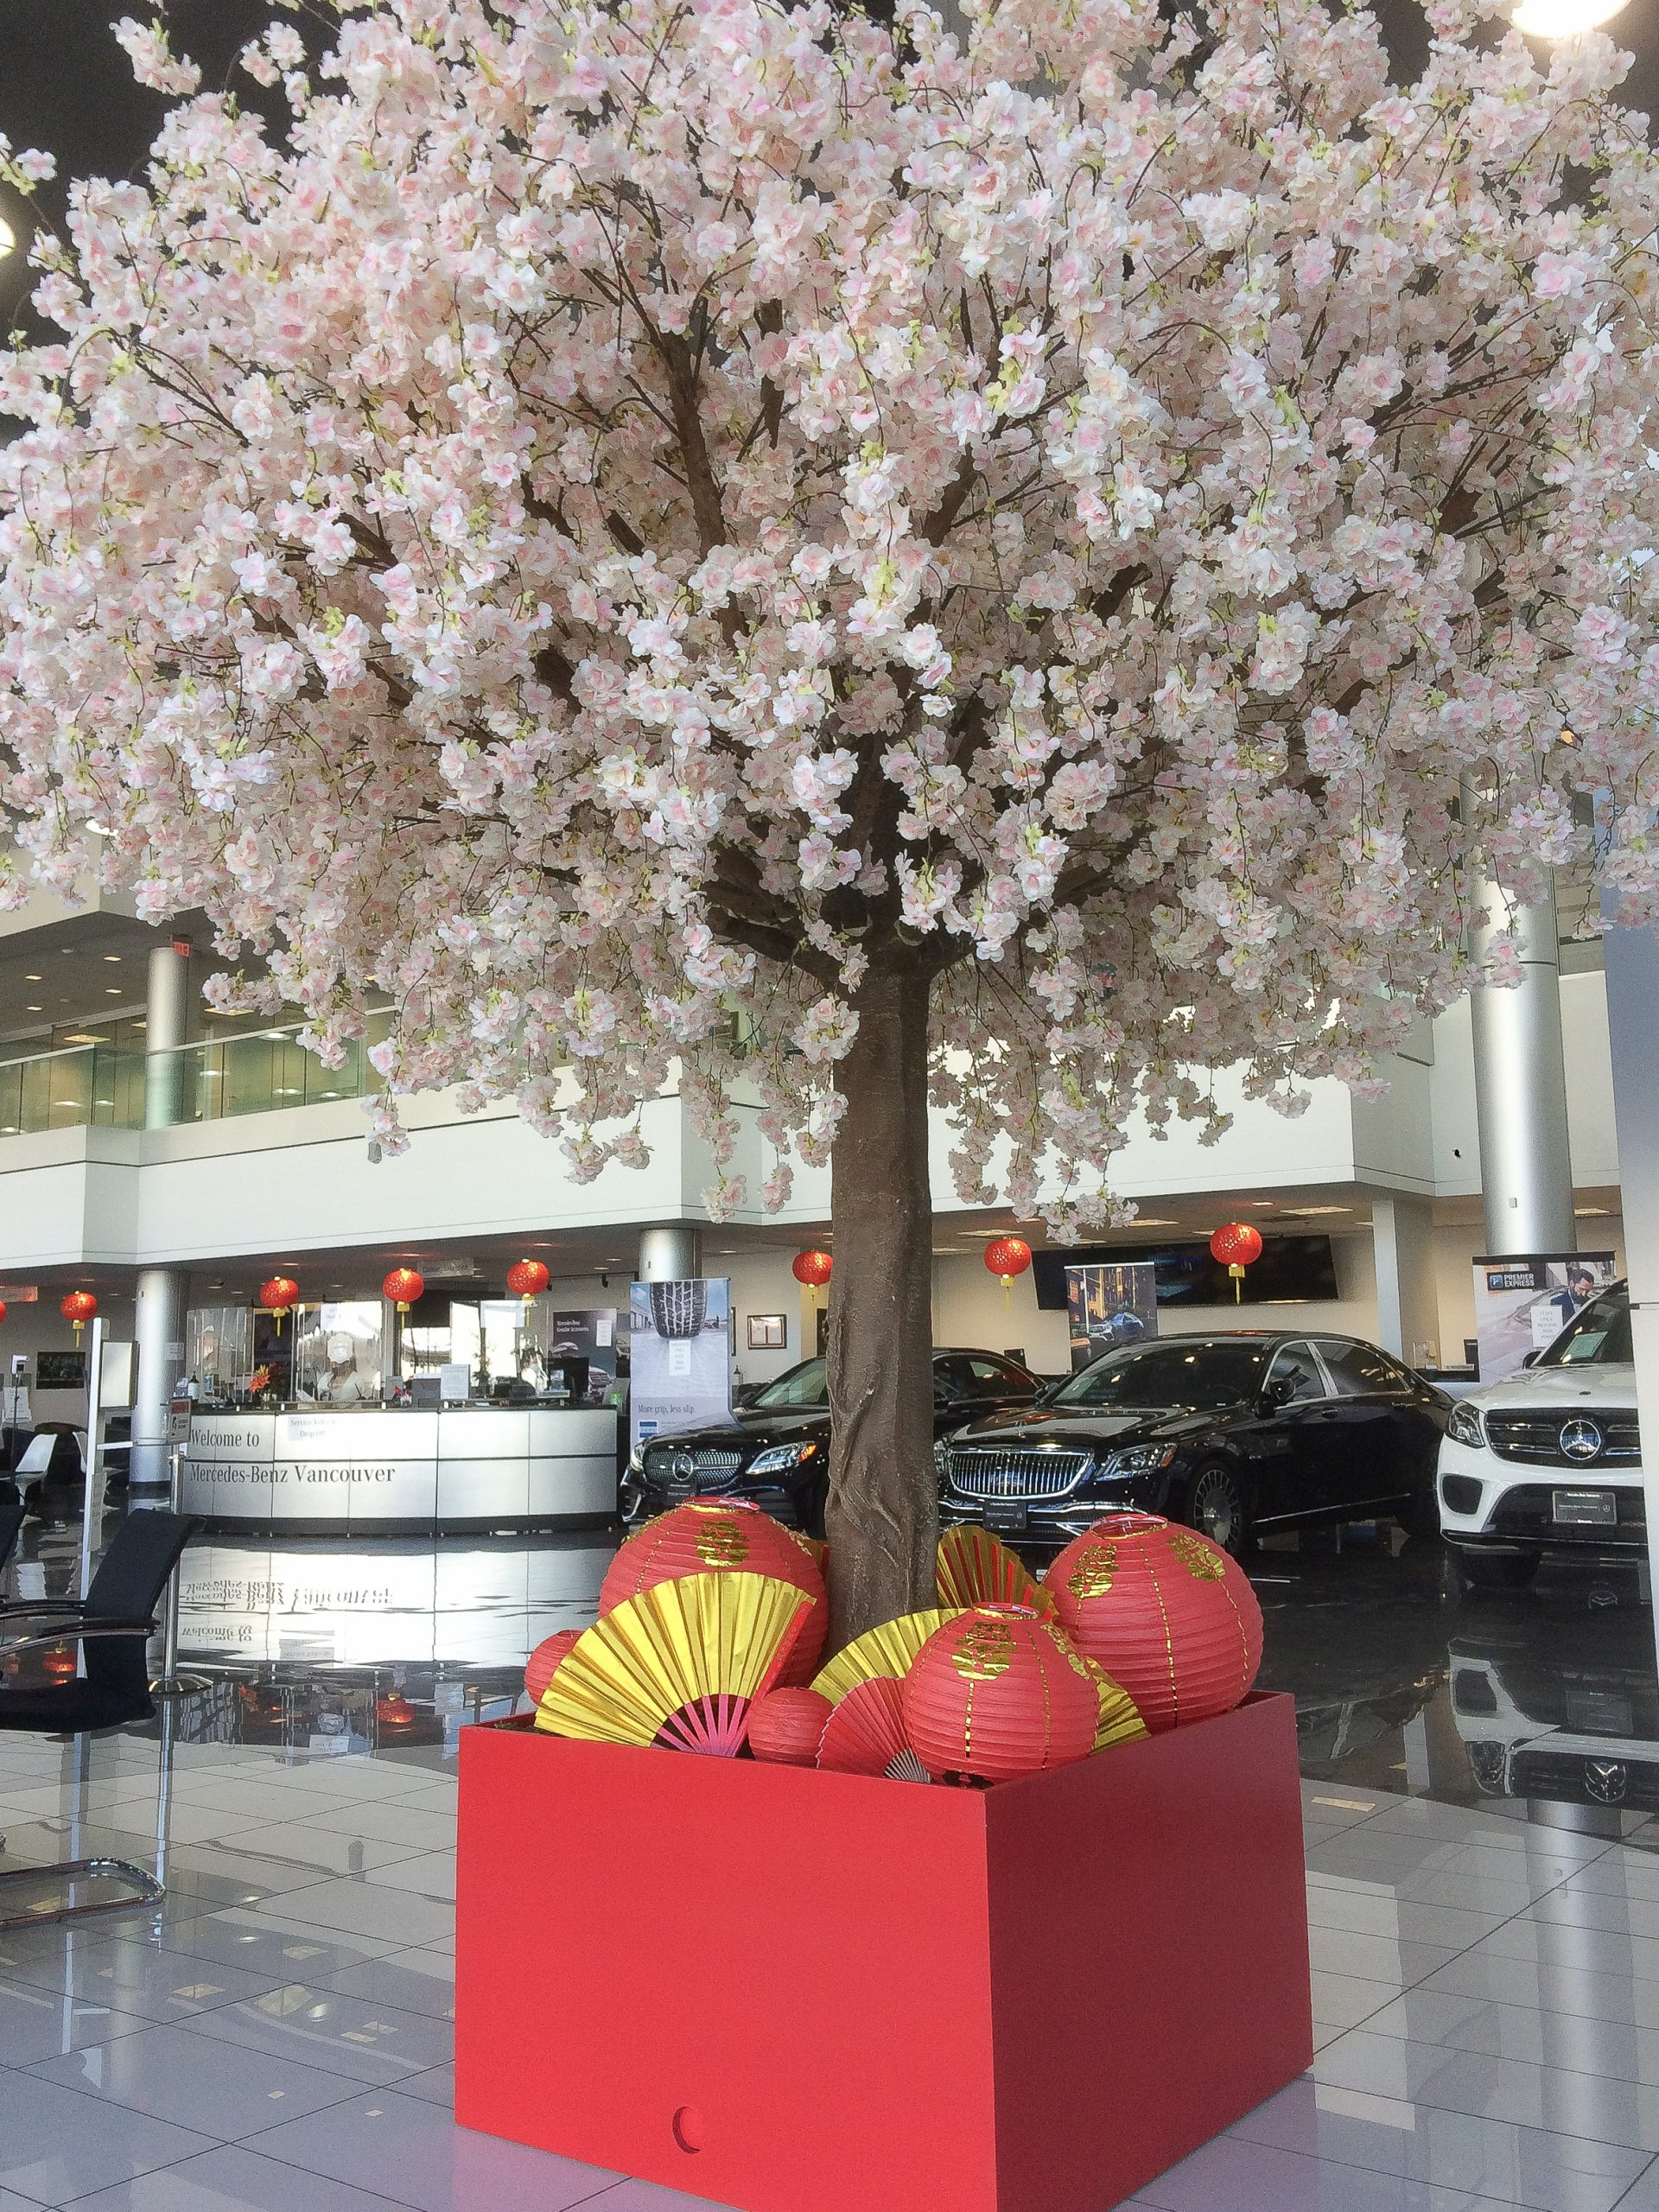 Oversized pink cherry blossom tree in large red planter with lanterns and fans in car dealership